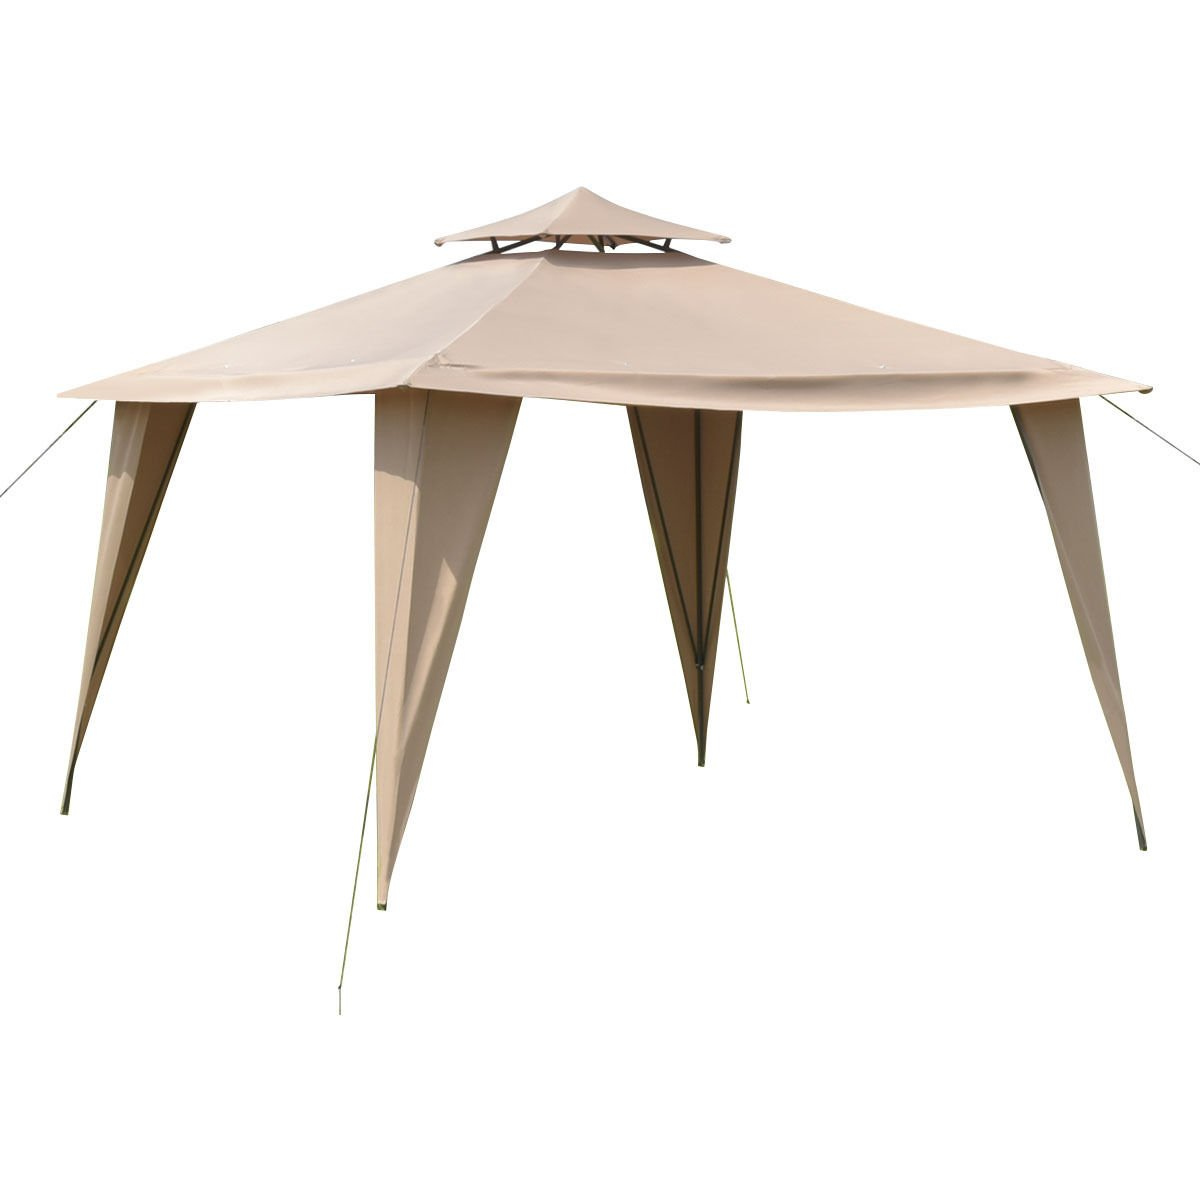 2-Tier 11'x11' Gazebo Canopy Shelter Awning Tent Steel Frame Patio Garden Brown + FREE E-Book